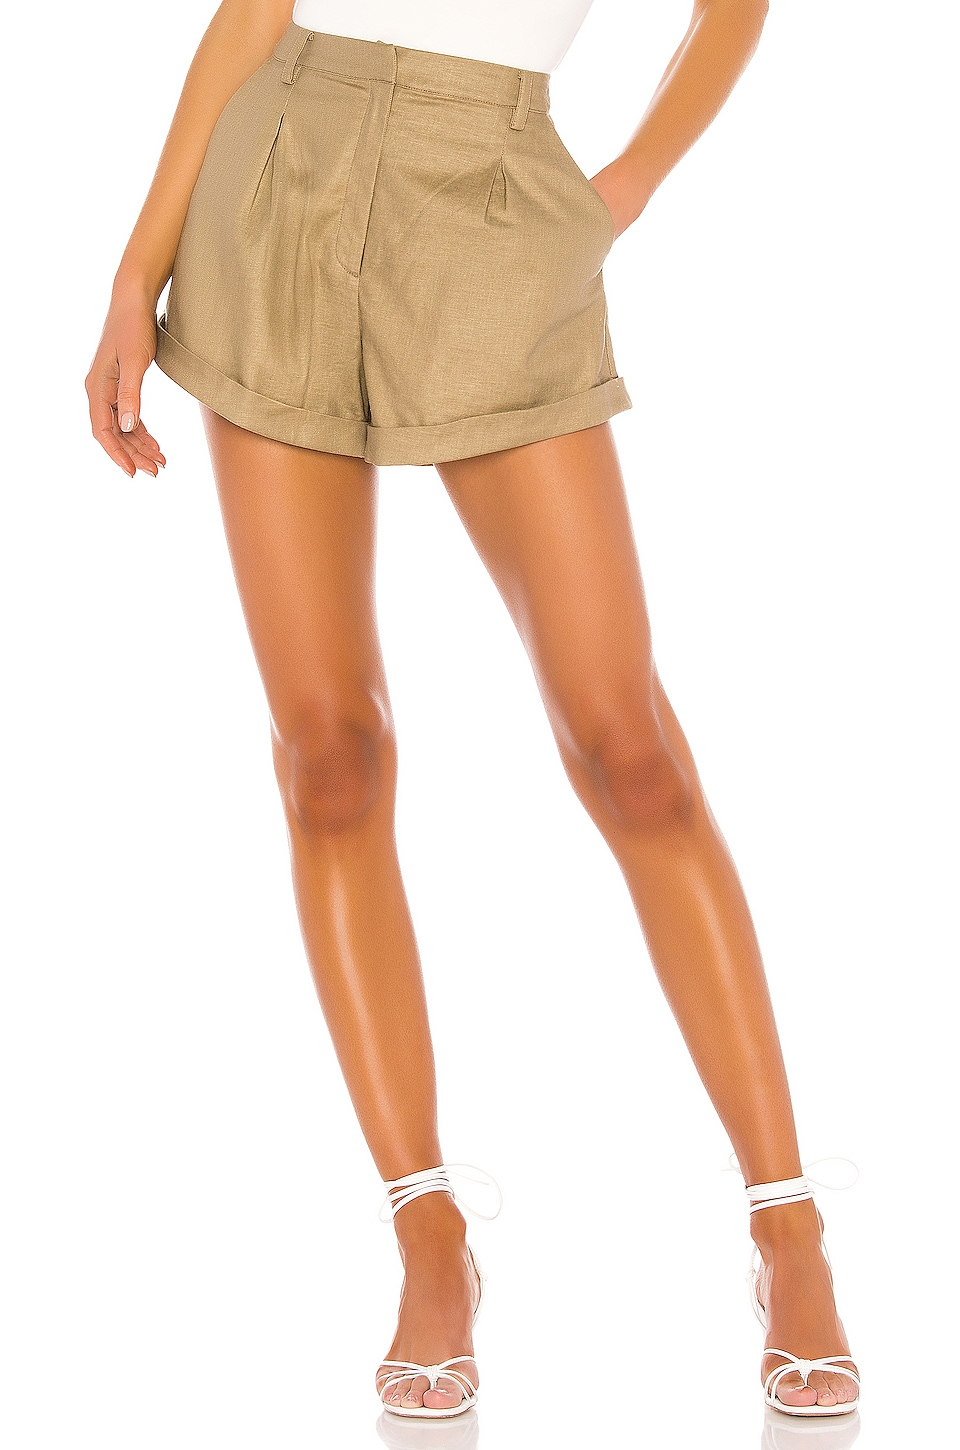 L'Academie The Jac Short in Olive Green